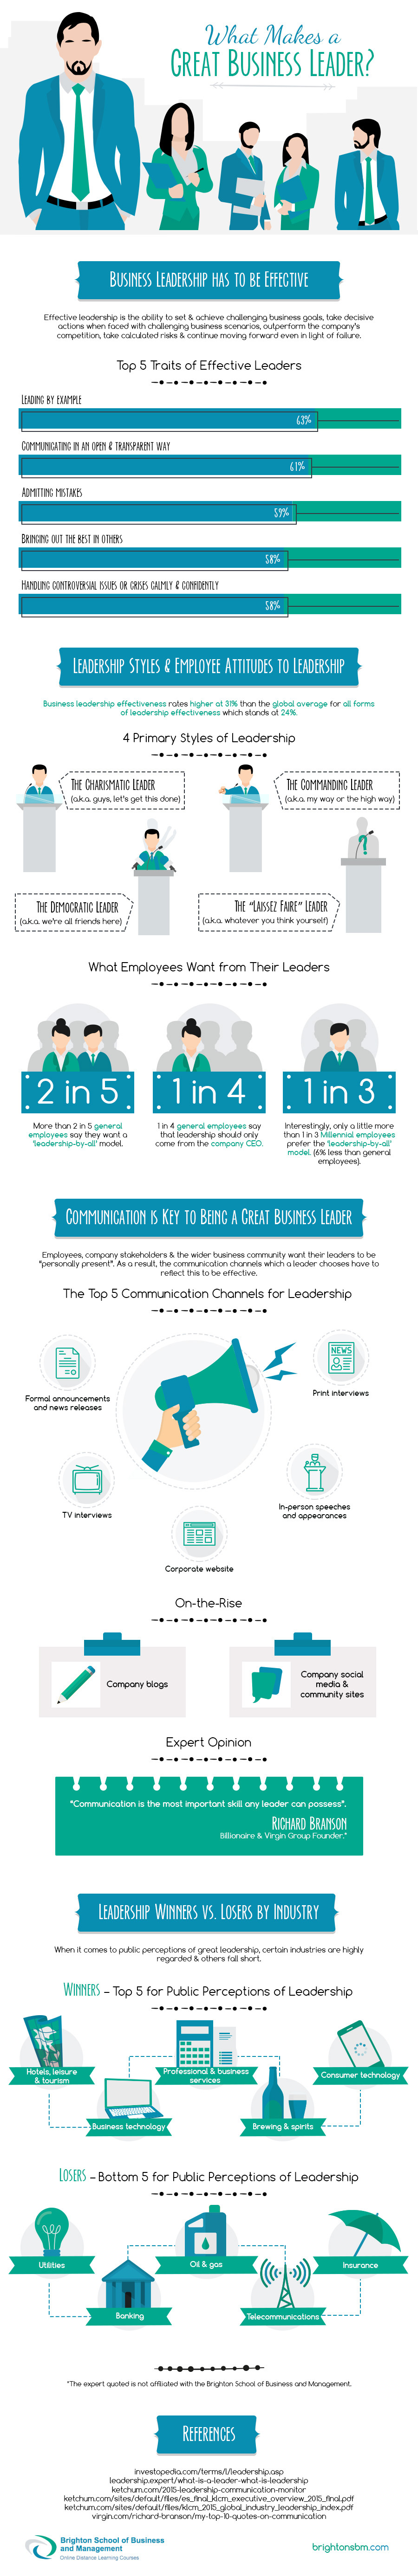 What-Makes-a-Great-Business-Leader-Infographic